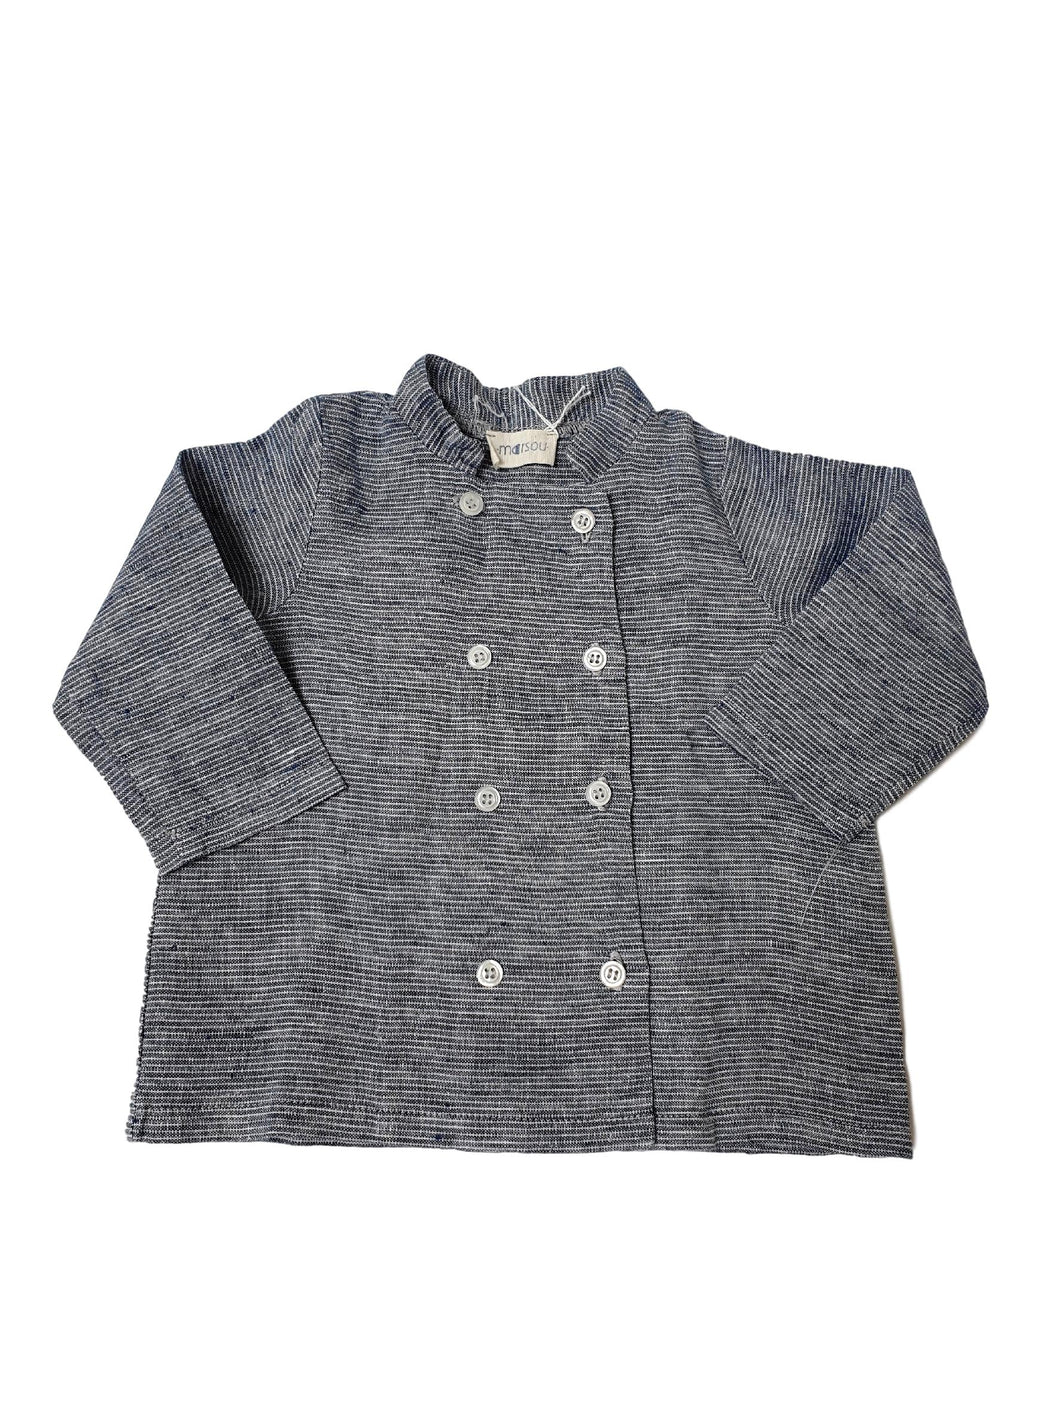 MARSOU boy shirt 12m